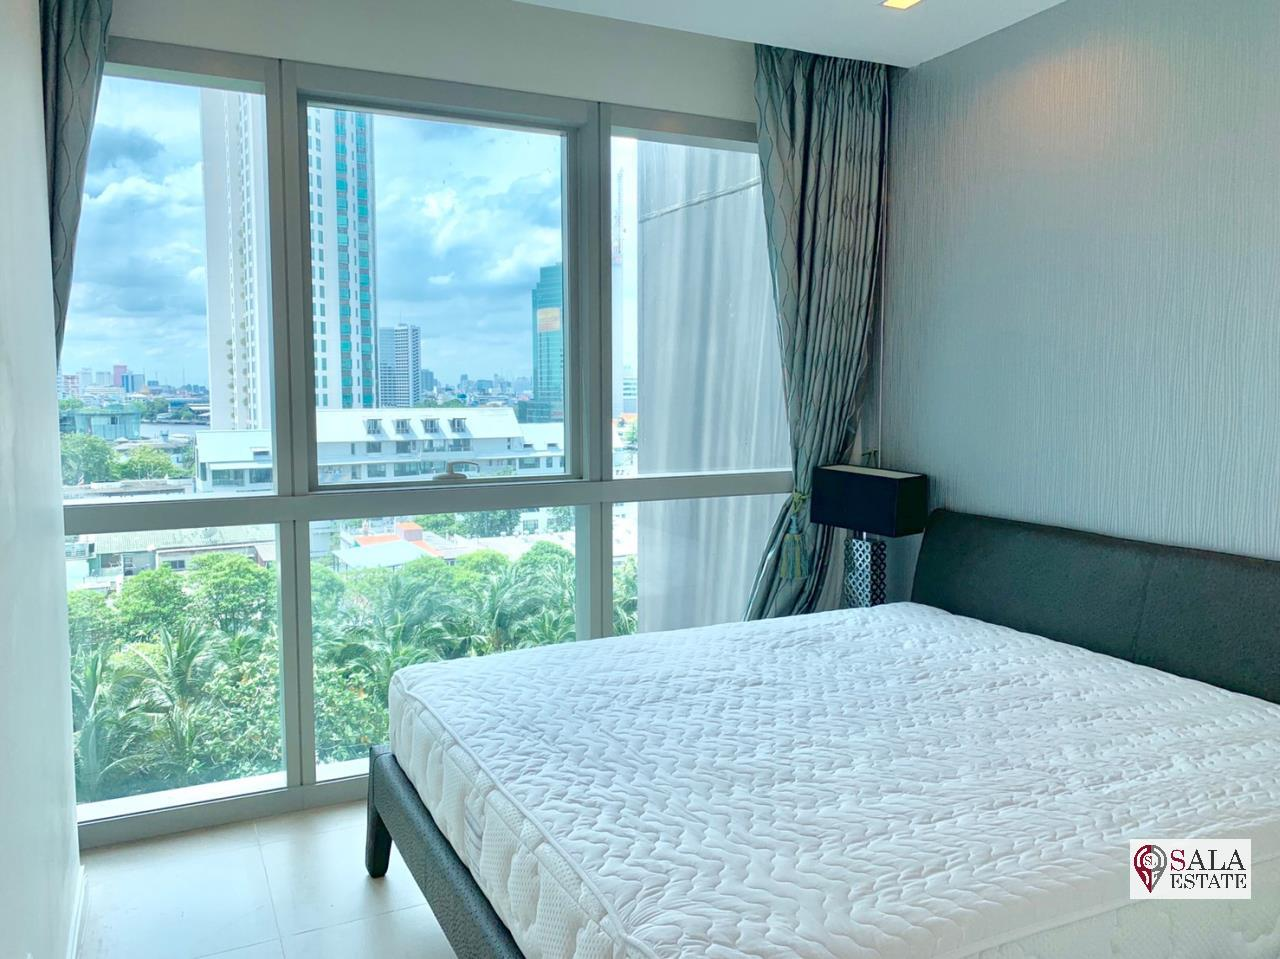 SALA ESTATE Agency's FOR SALE  THE RIVER – RIVERSIDE,ICONSIAM,豪华公寓,河景房, 2卧2卫, 家具齐全 2